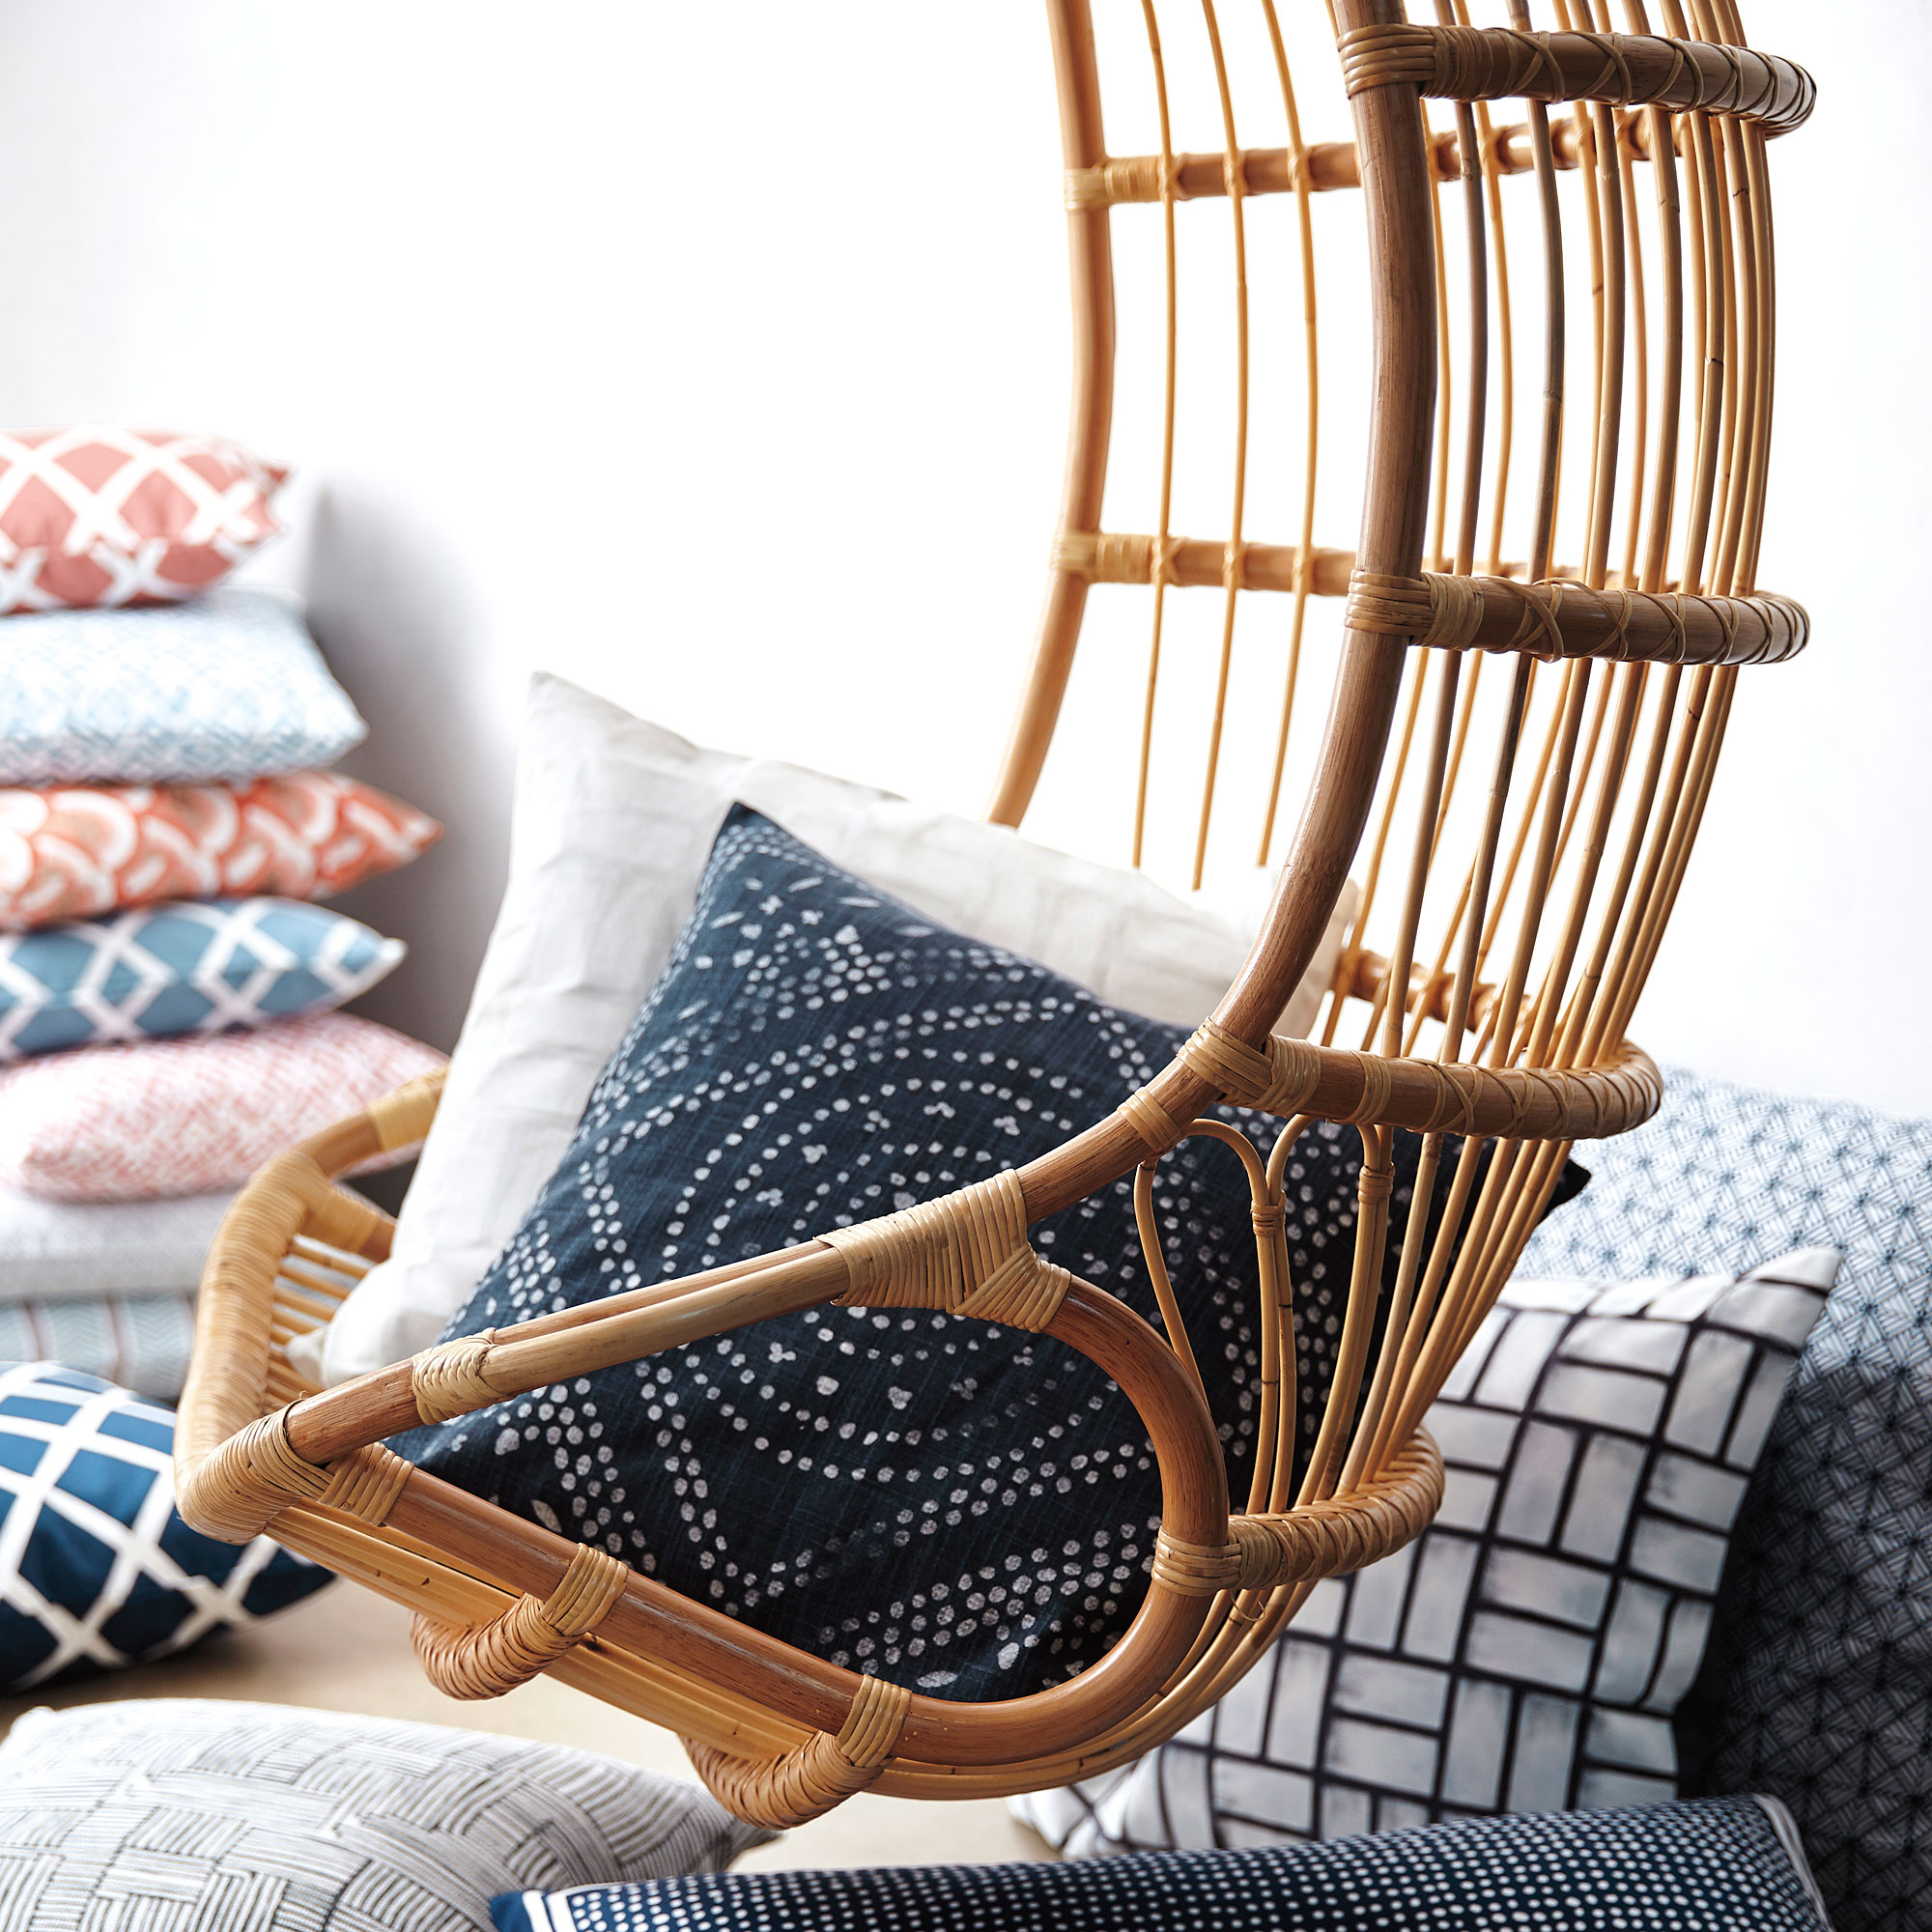 hanging chair serena and lily homedics elounger massage hammock favorites sunset magazine